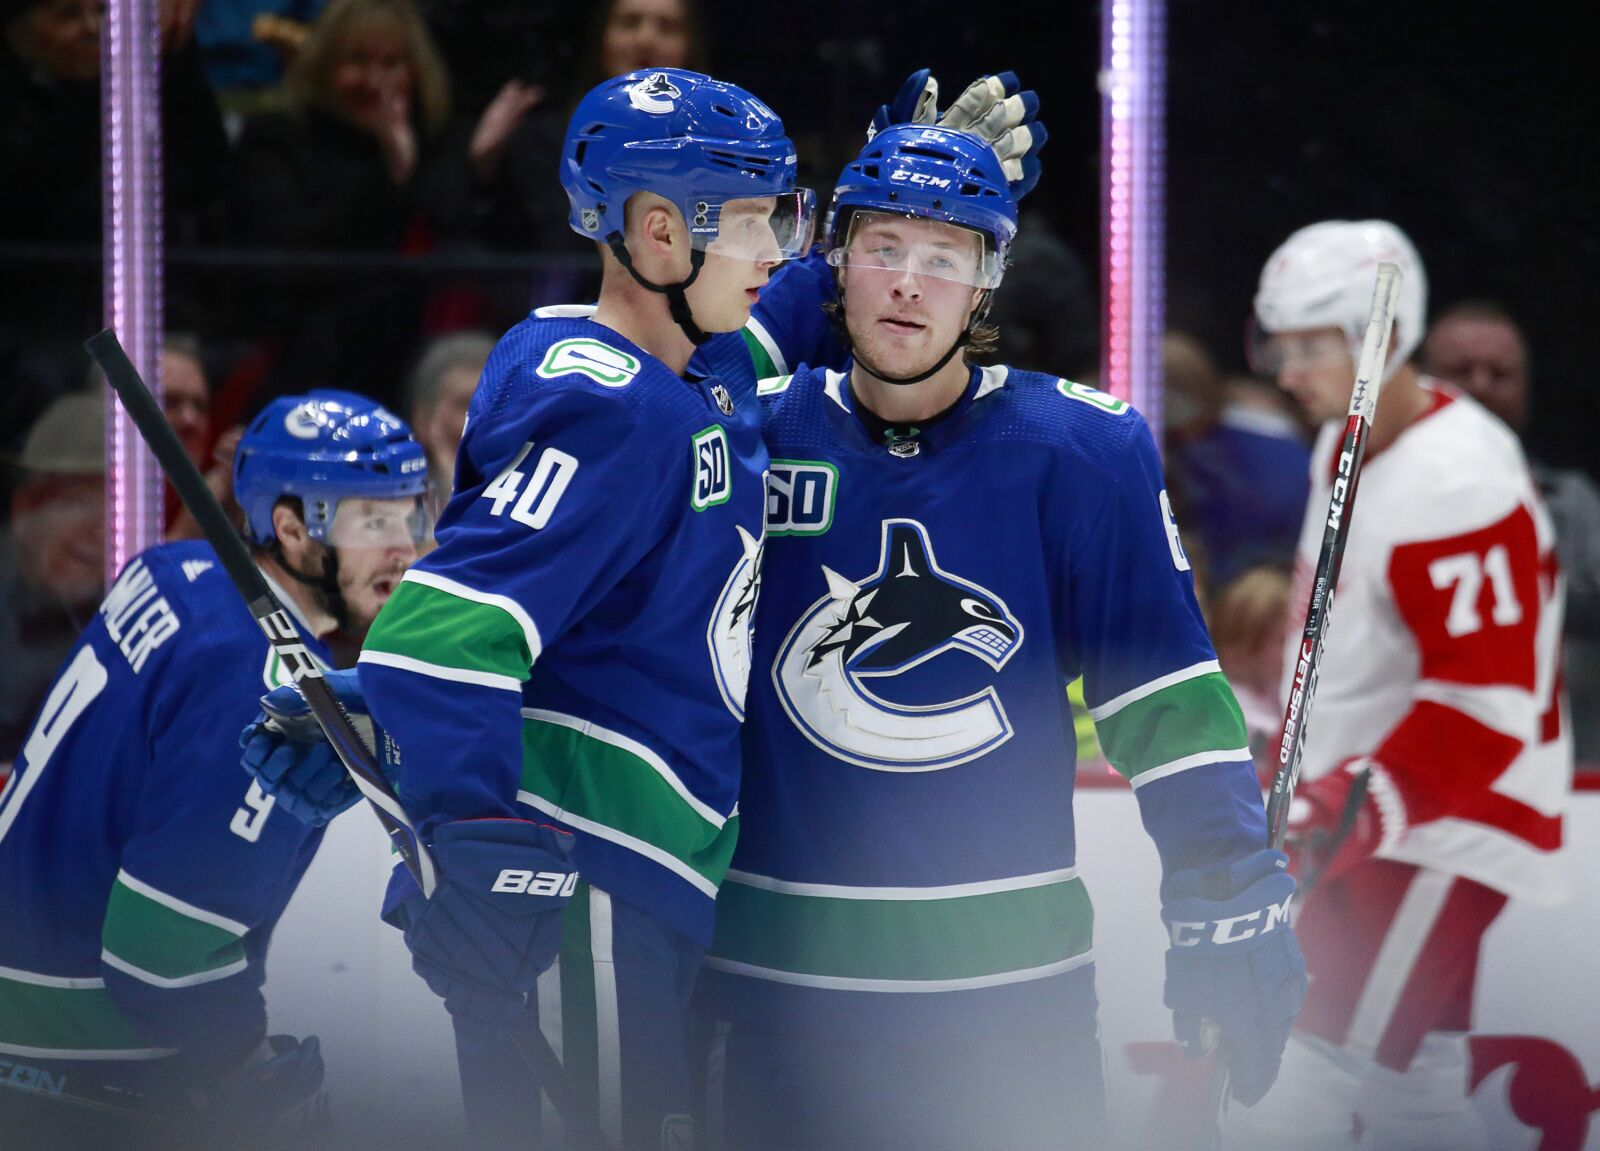 3 factors that could cost the Vancouver Canucks their playoff hopes